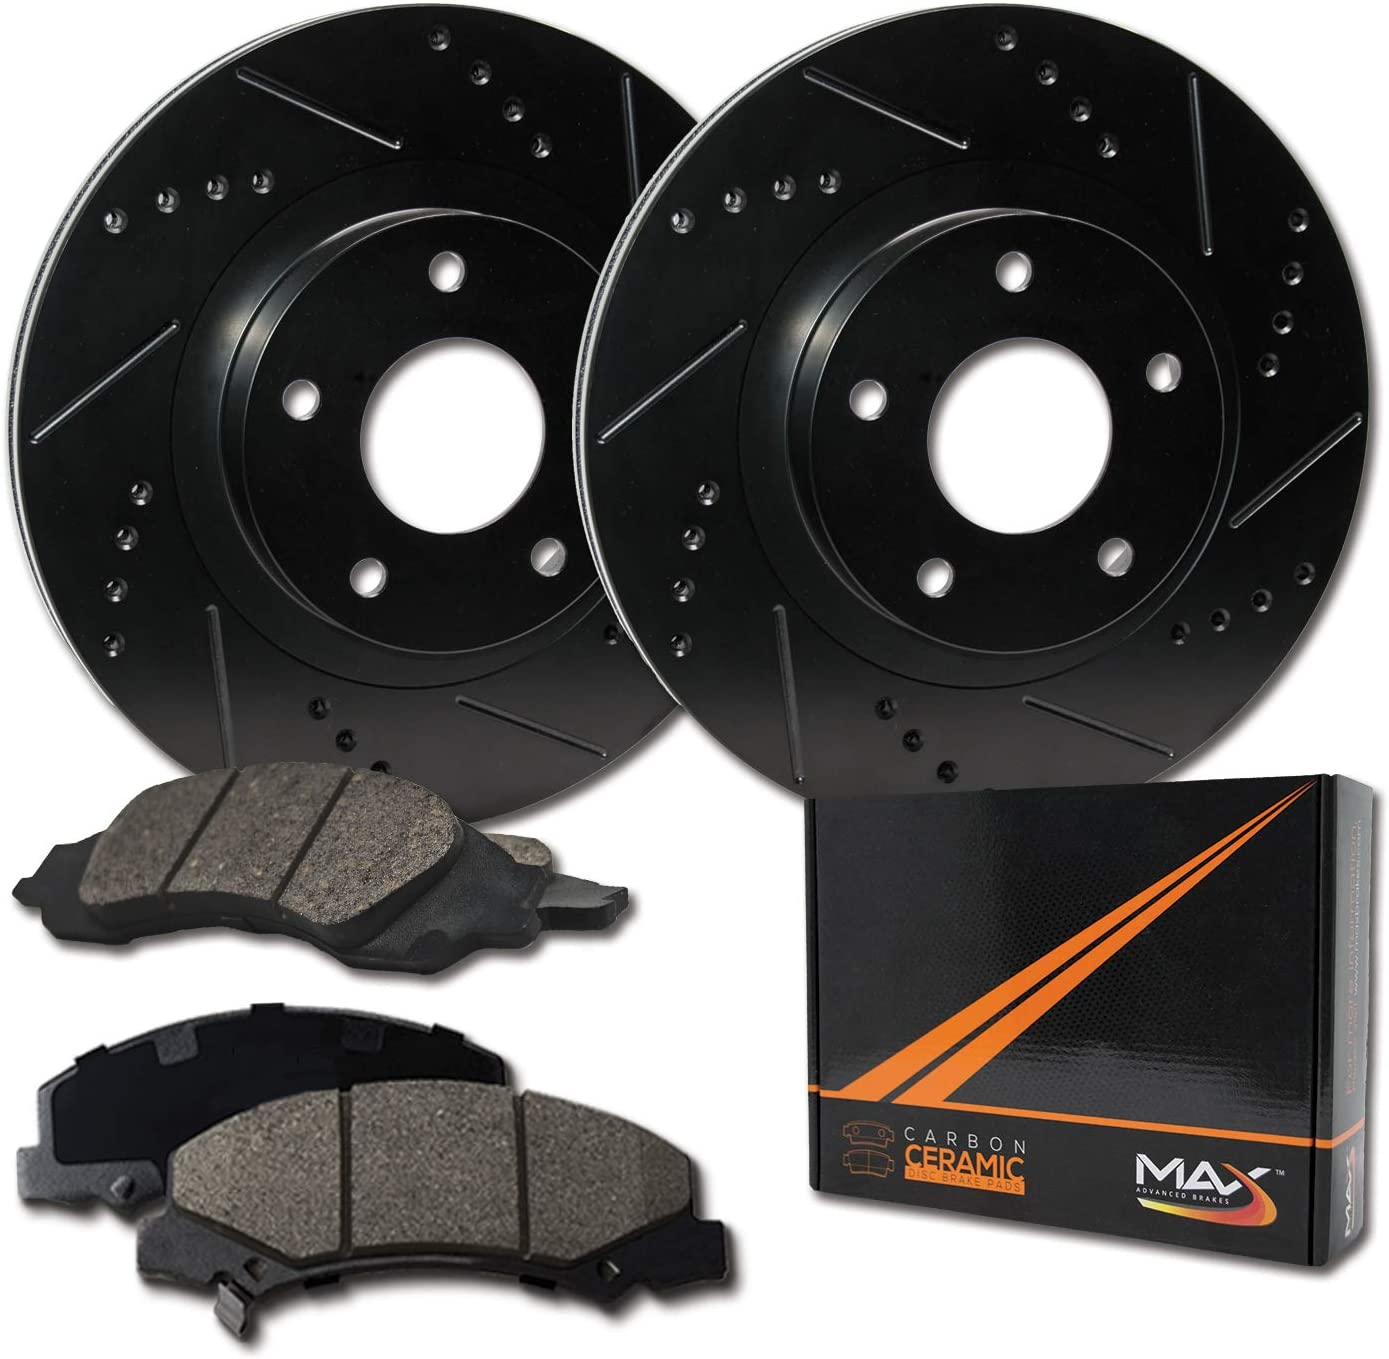 KT091783 Fits: 2003 03 2004 04 2005 05 Mazda 6 E-Coated Slotted Drilled Rotors + Ceramic Pads Max Brakes Front /& Rear Elite Brake Kit